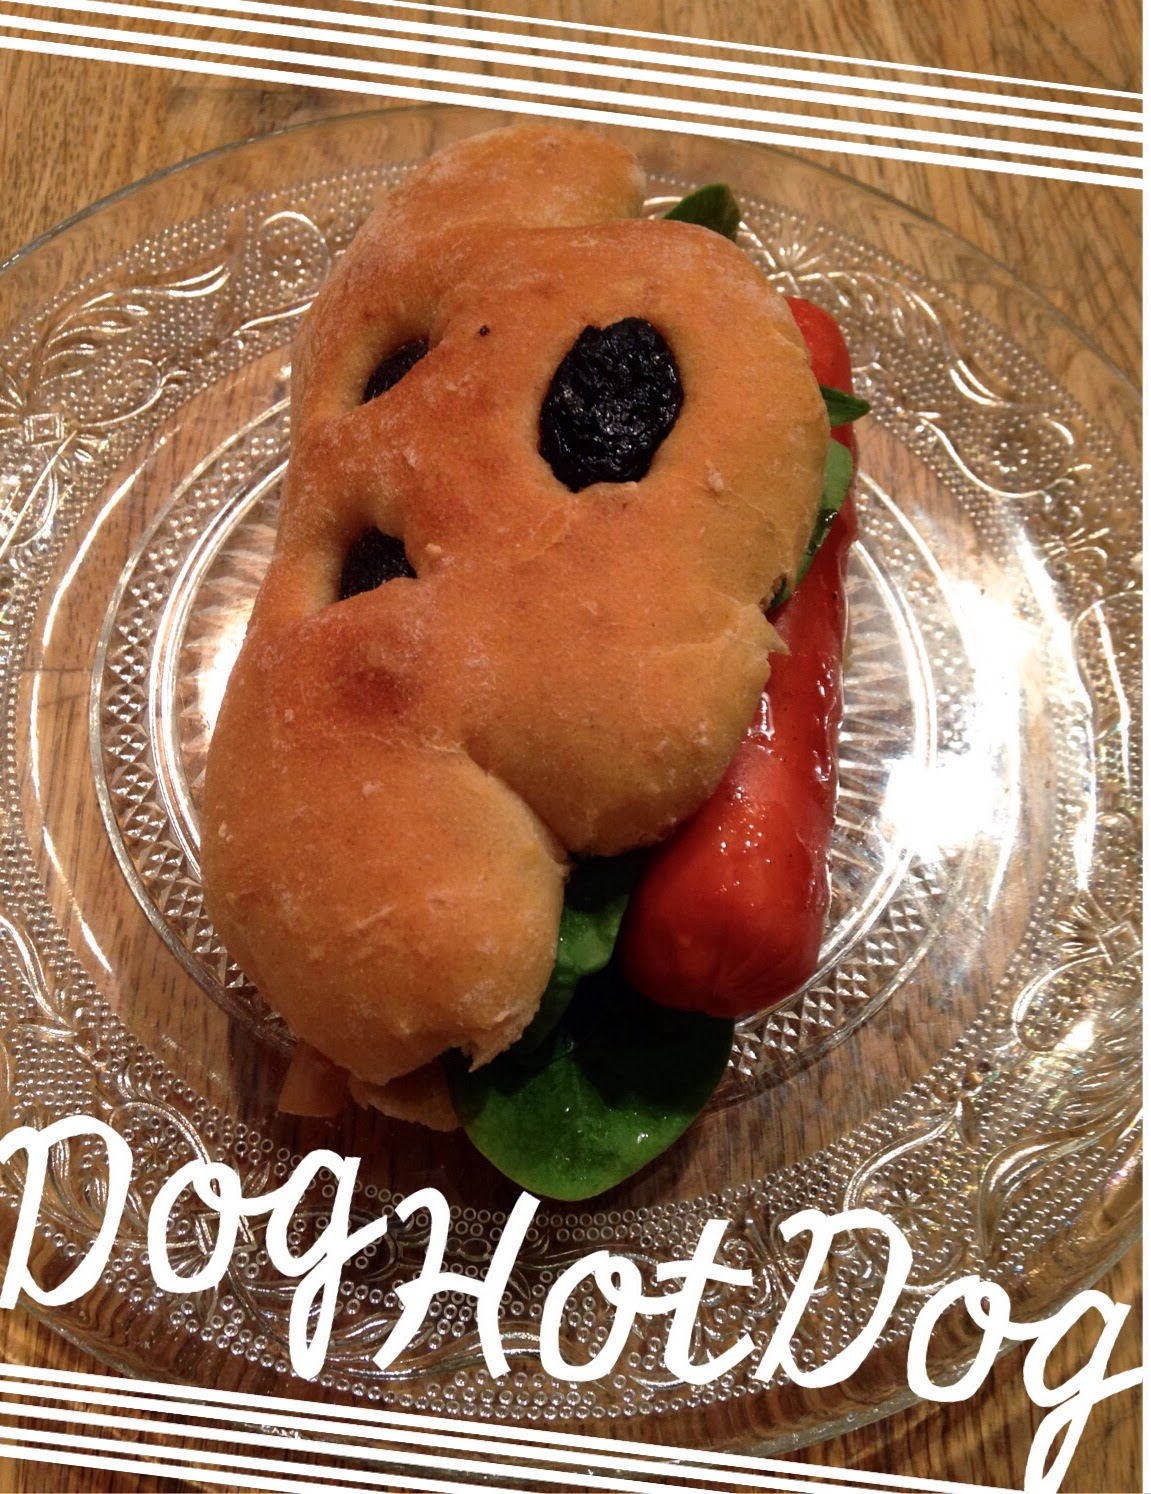 Dog Hot Dog Recette Miam Homemade